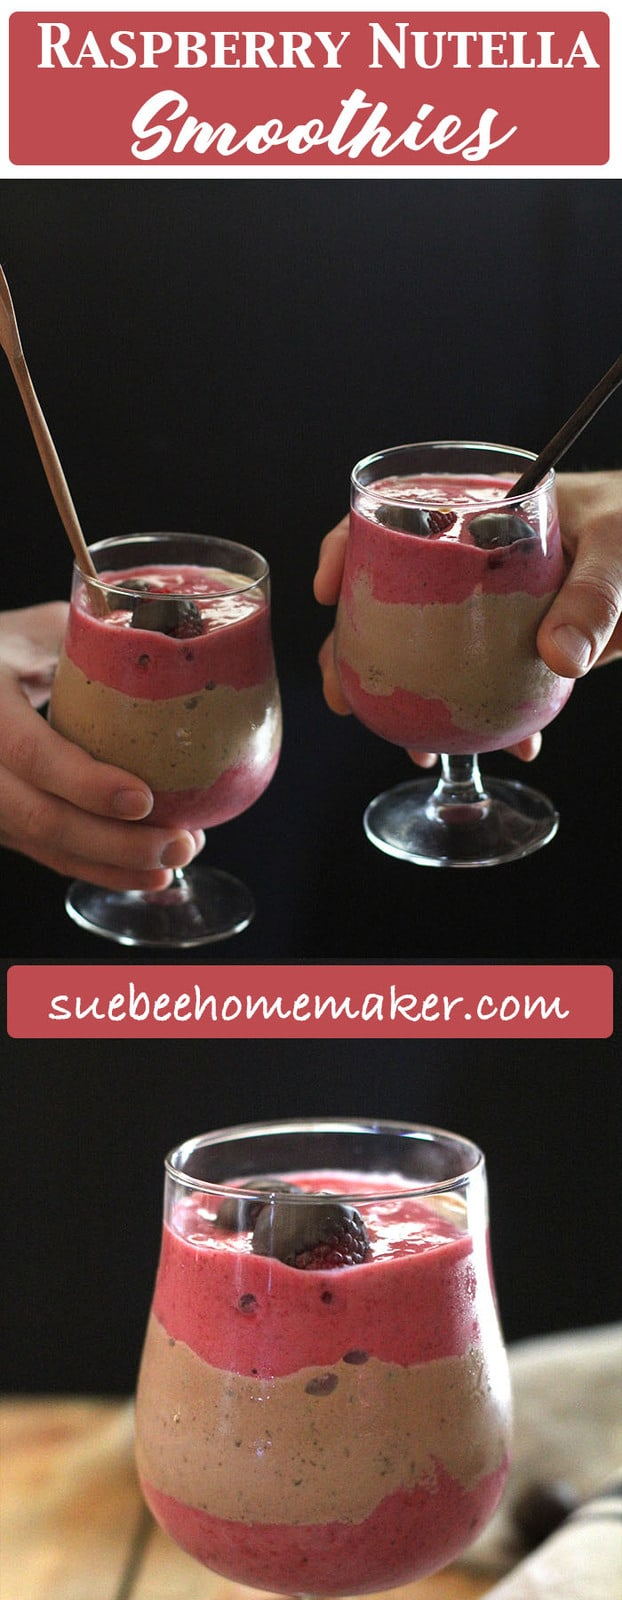 The perfect mix of raspberry smoothie with Nutella milkshake, these Raspberry Nutella Smoothies are so delightful. The chocolate covered raspberries make them even more decadent!   suebeehomemaker.com